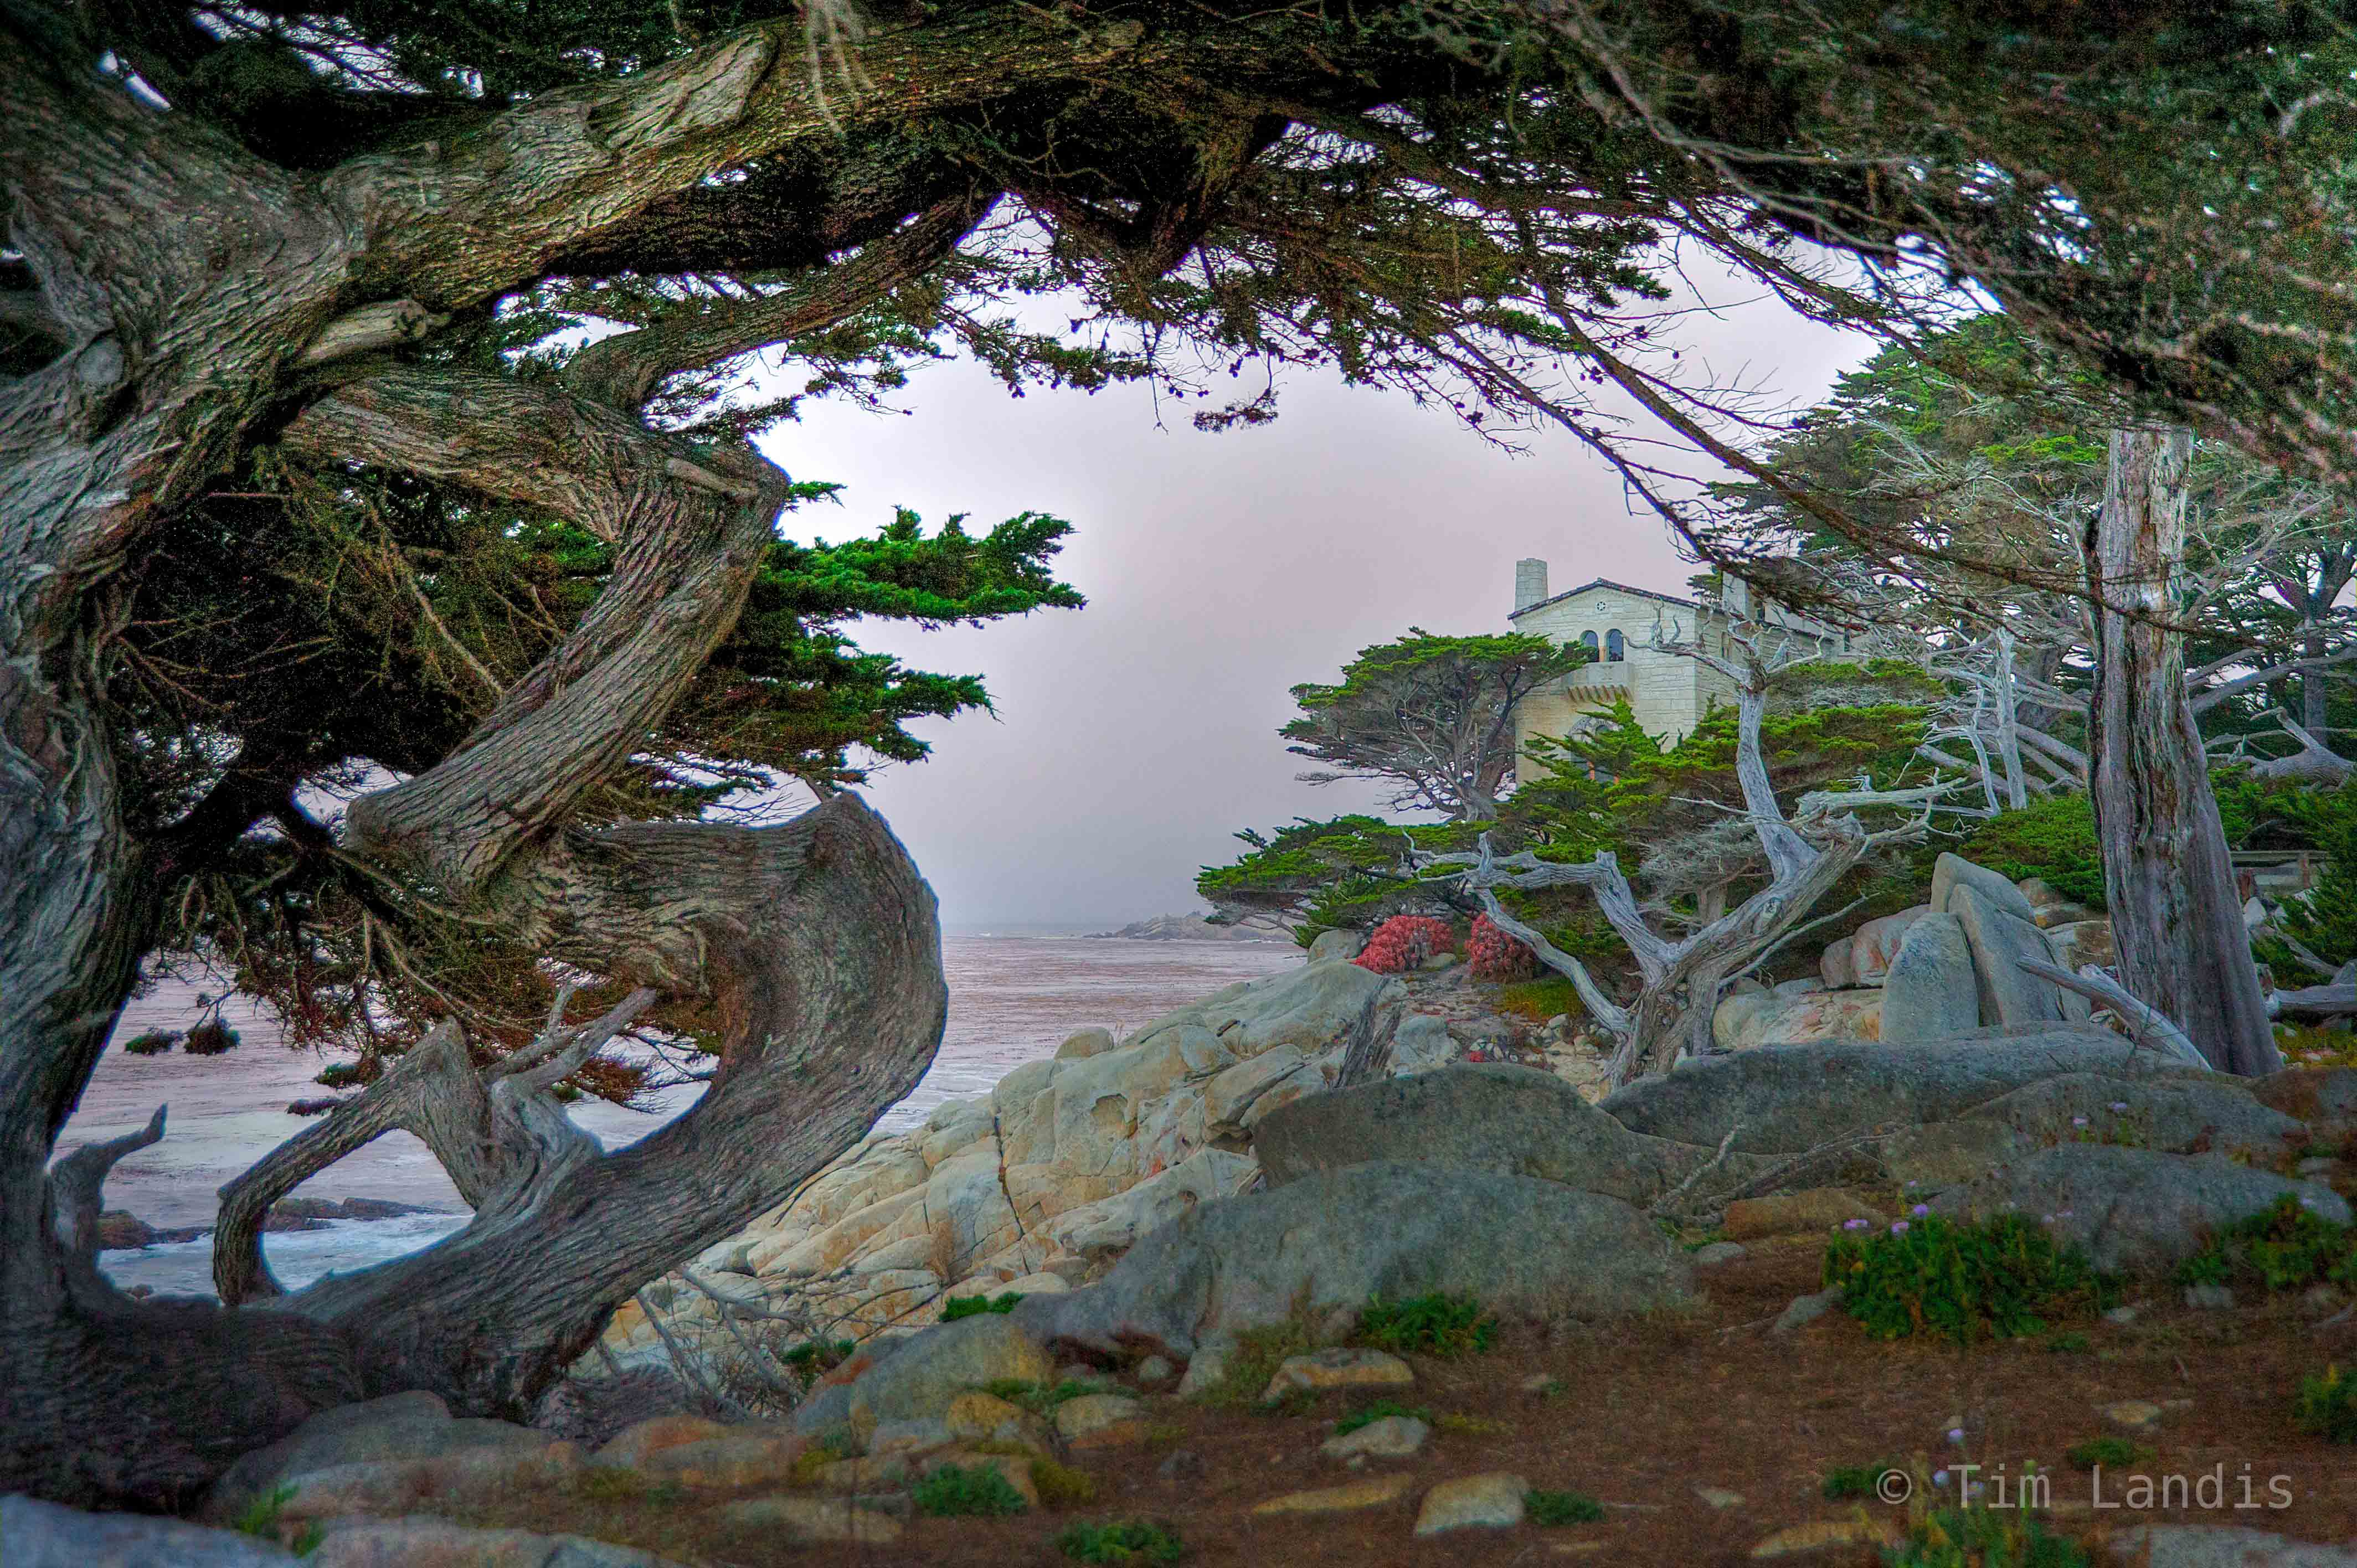 Monterey peninsula , just north of Pebble beach golf course, photo